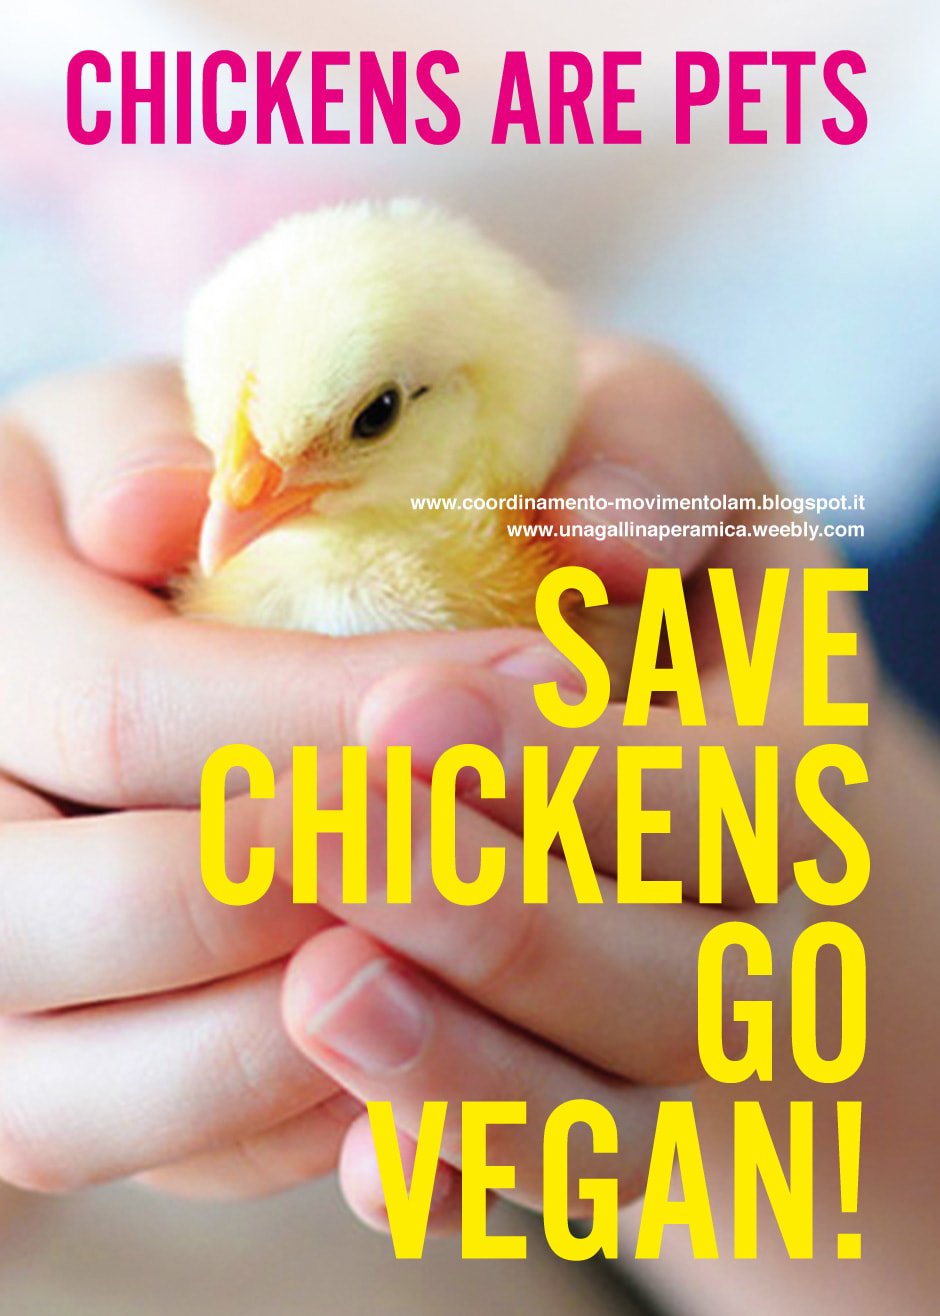 CHICKENS ARE PETS. GO VEGAN!